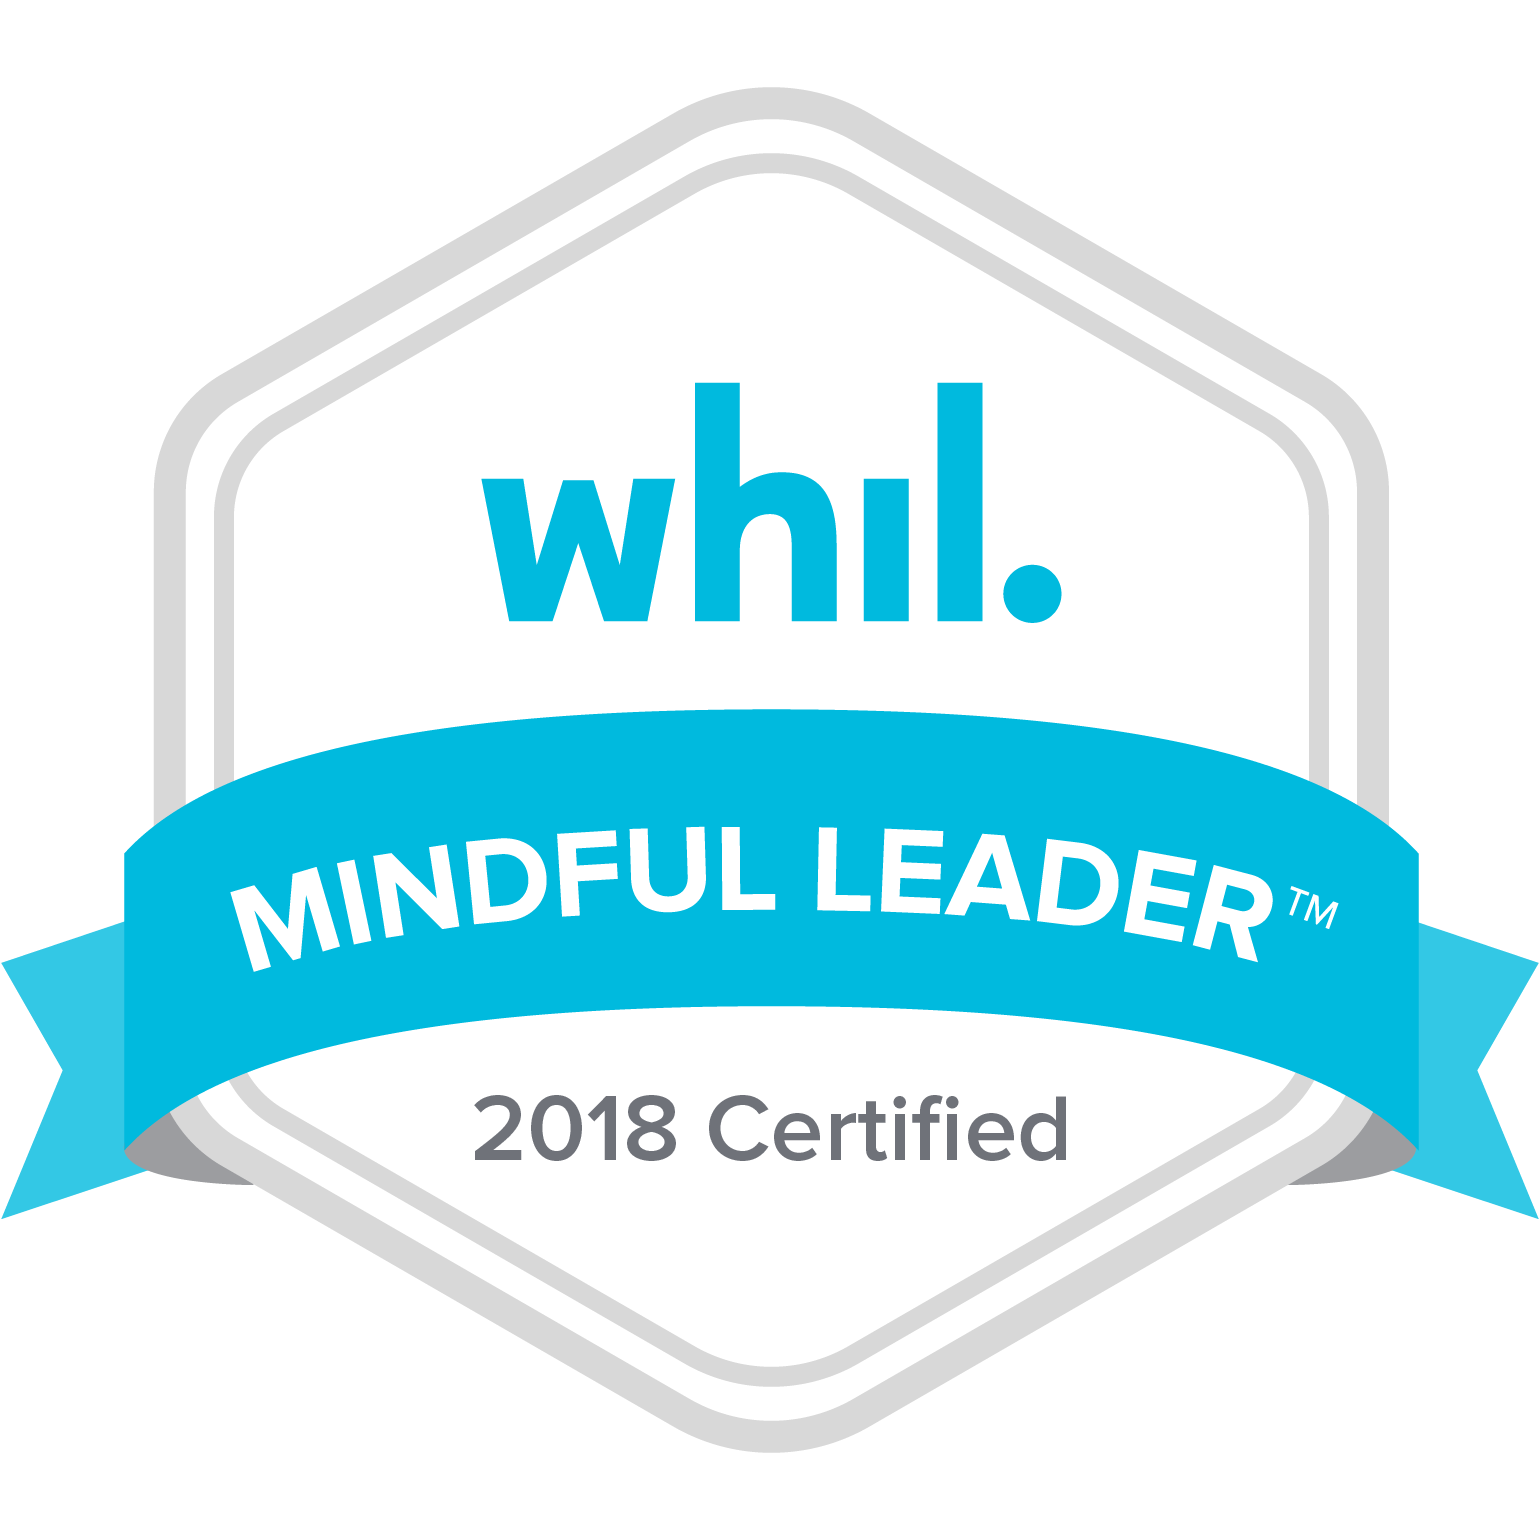 mindful_leader_badge_2018.png